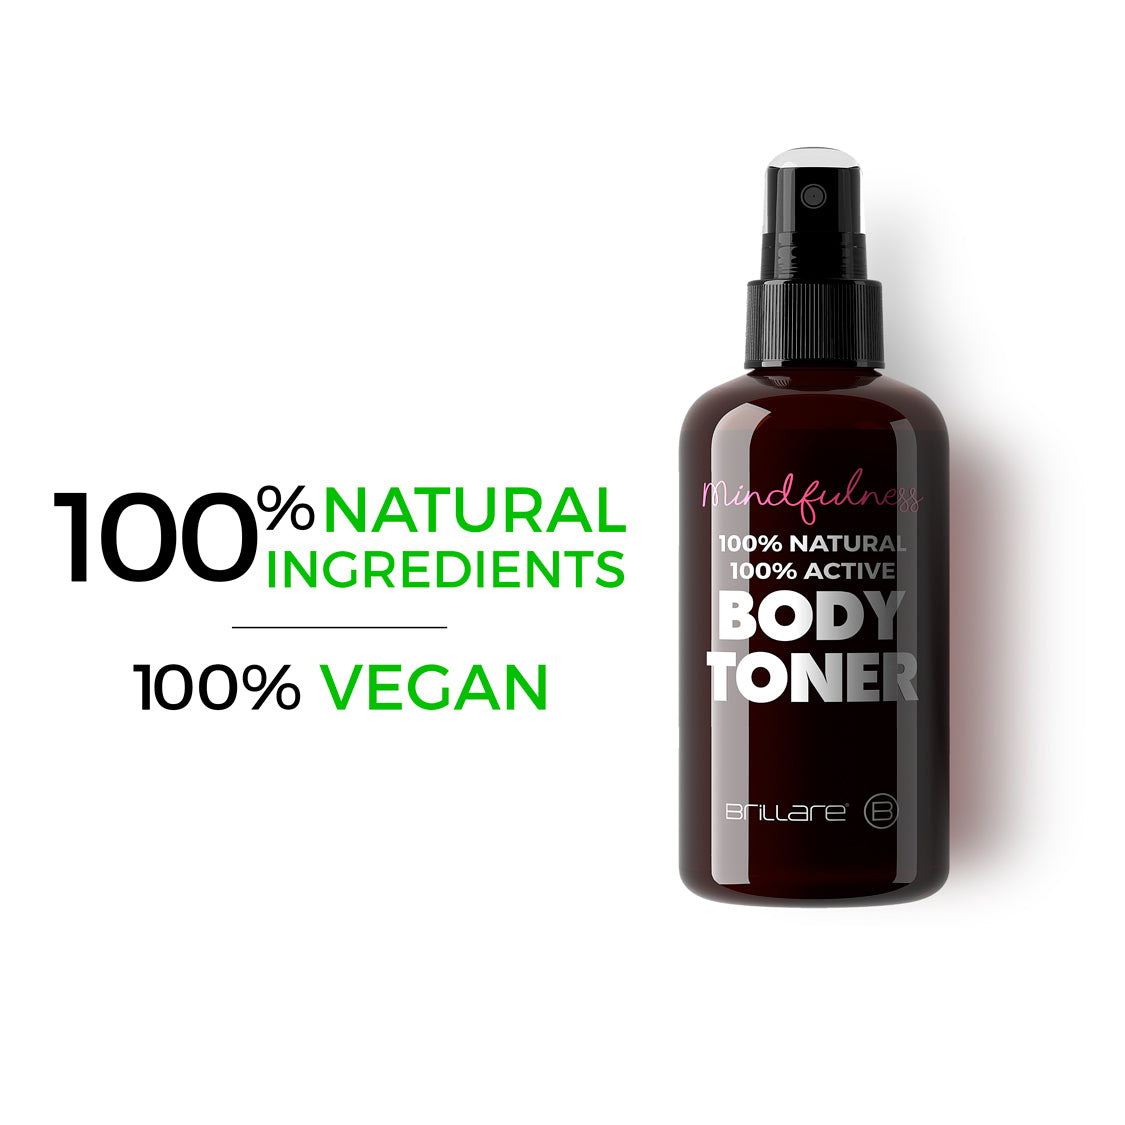 Mindfulness 100% Natural Body Toner